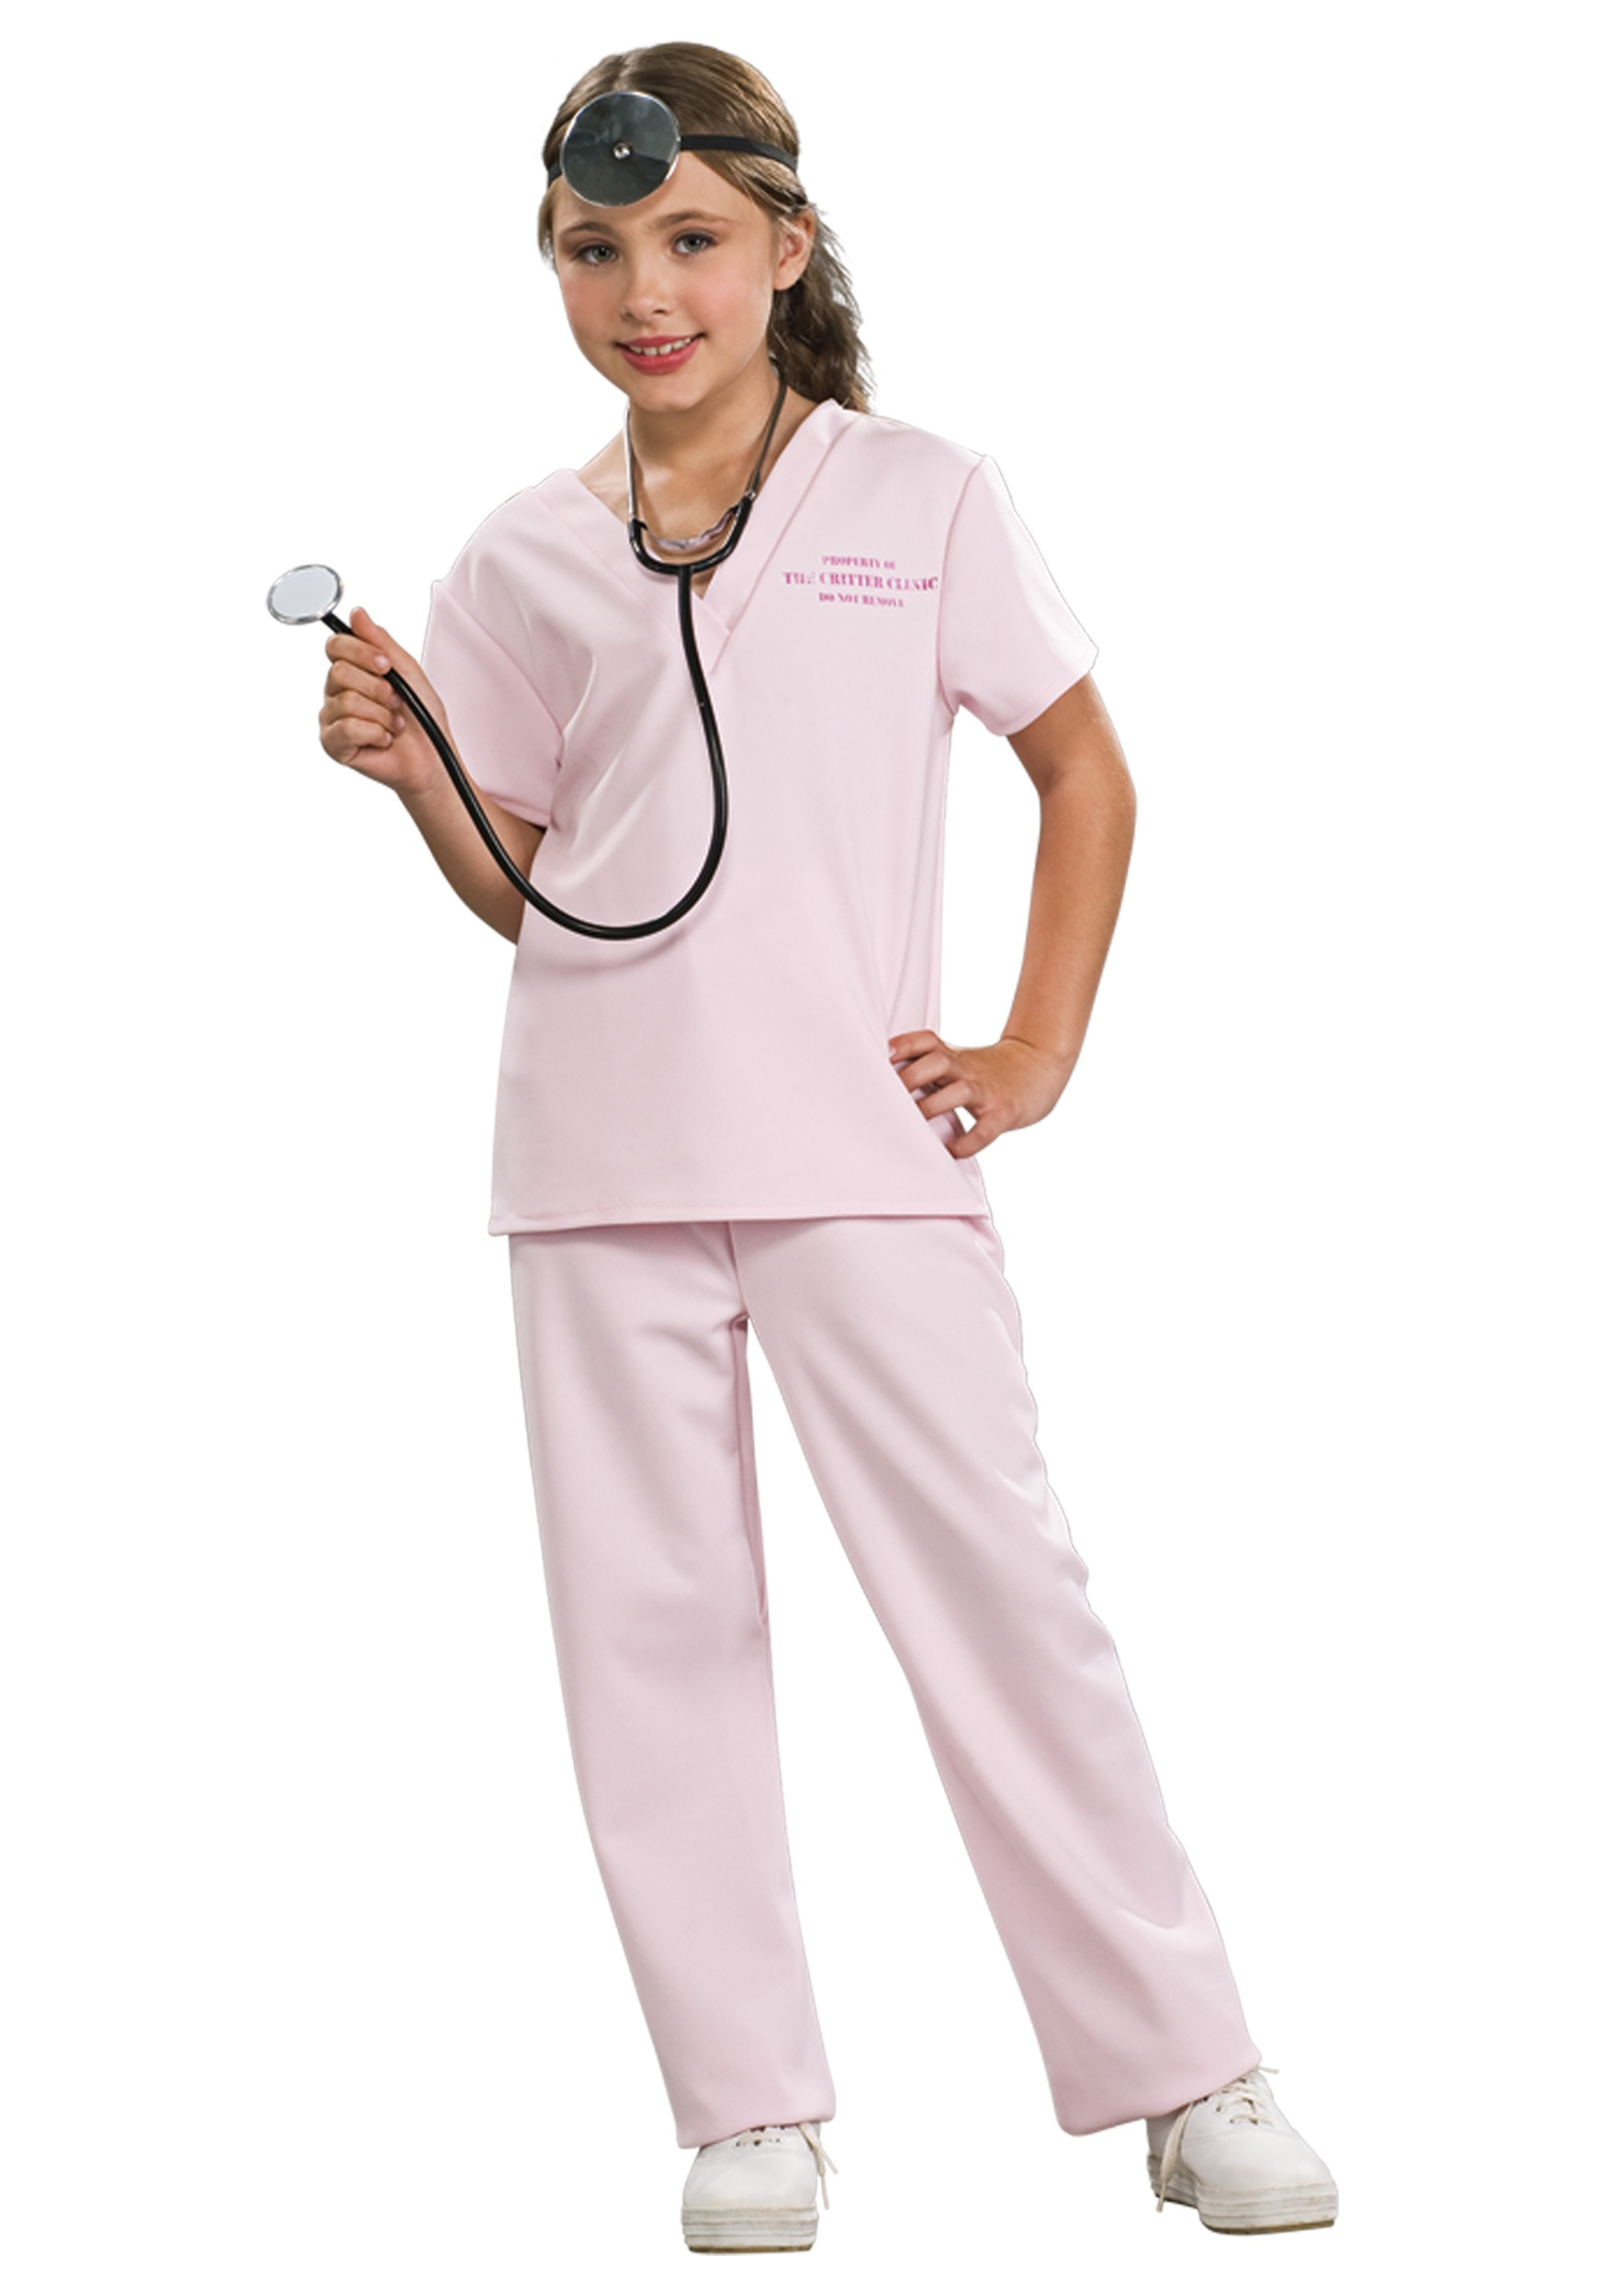 46bf38de9d4 Child Nurse Costumes - Kids Doctor and Nurse Costume